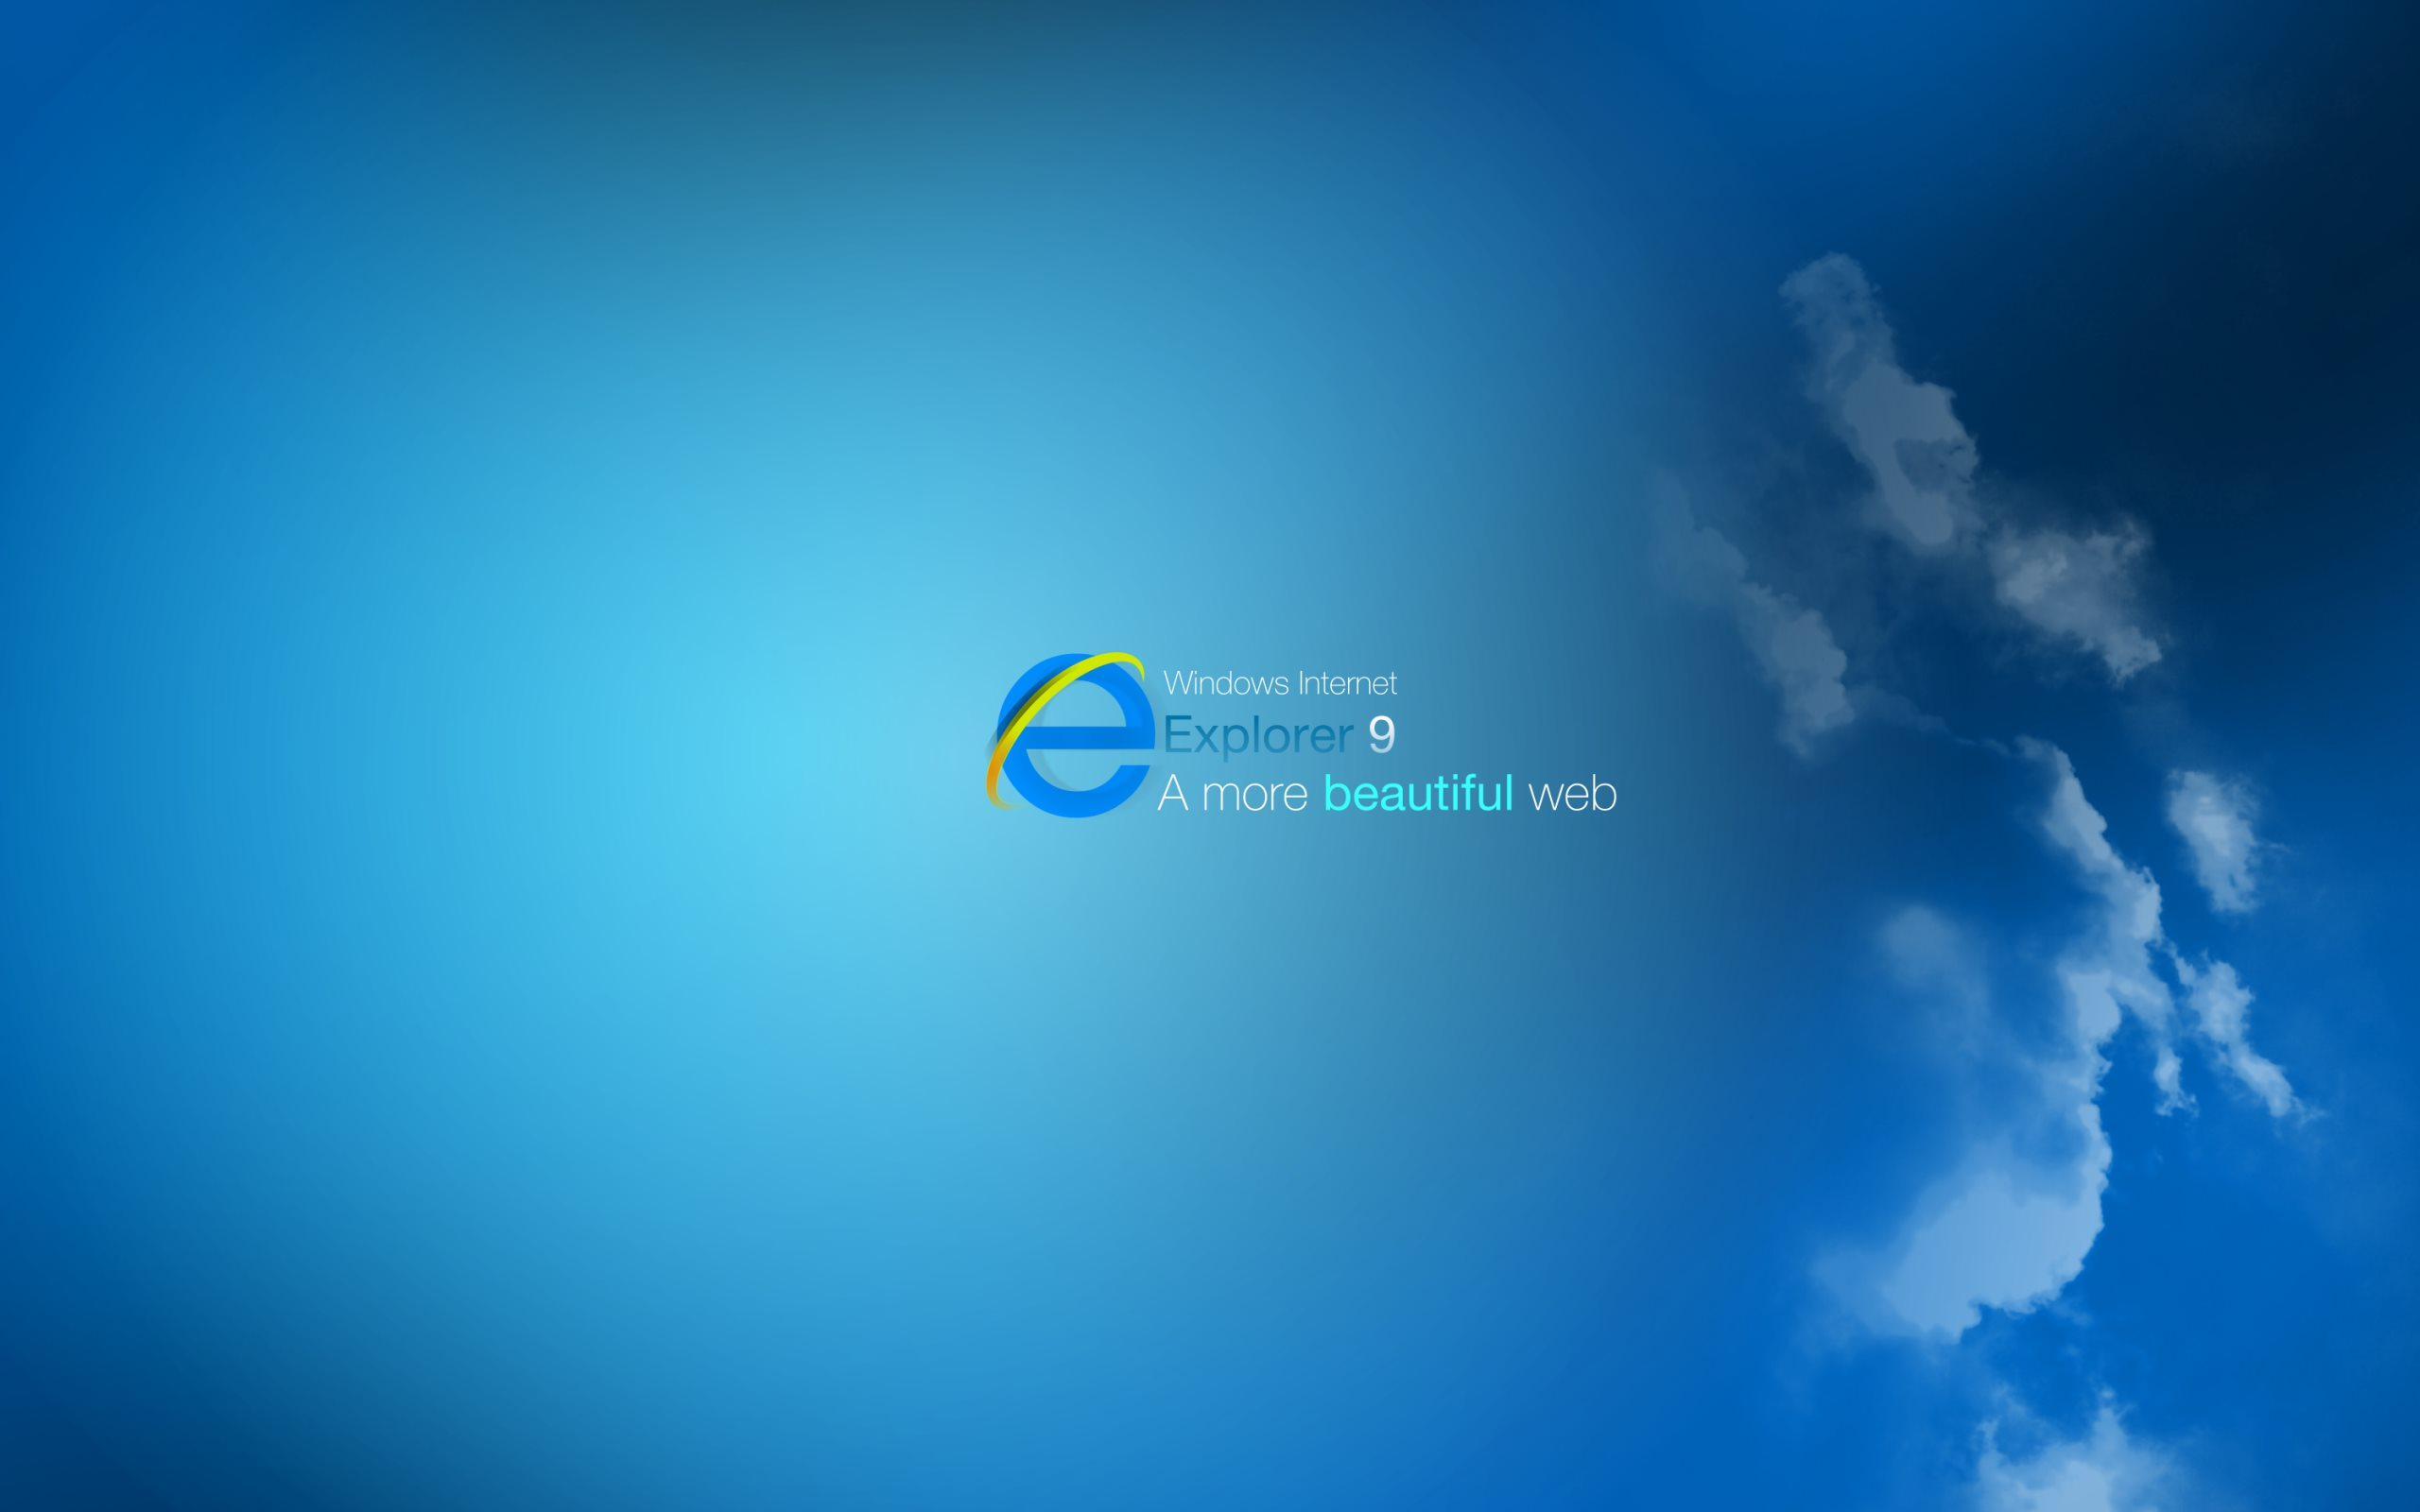 internet explorer 9 full hd wallpaper and background image